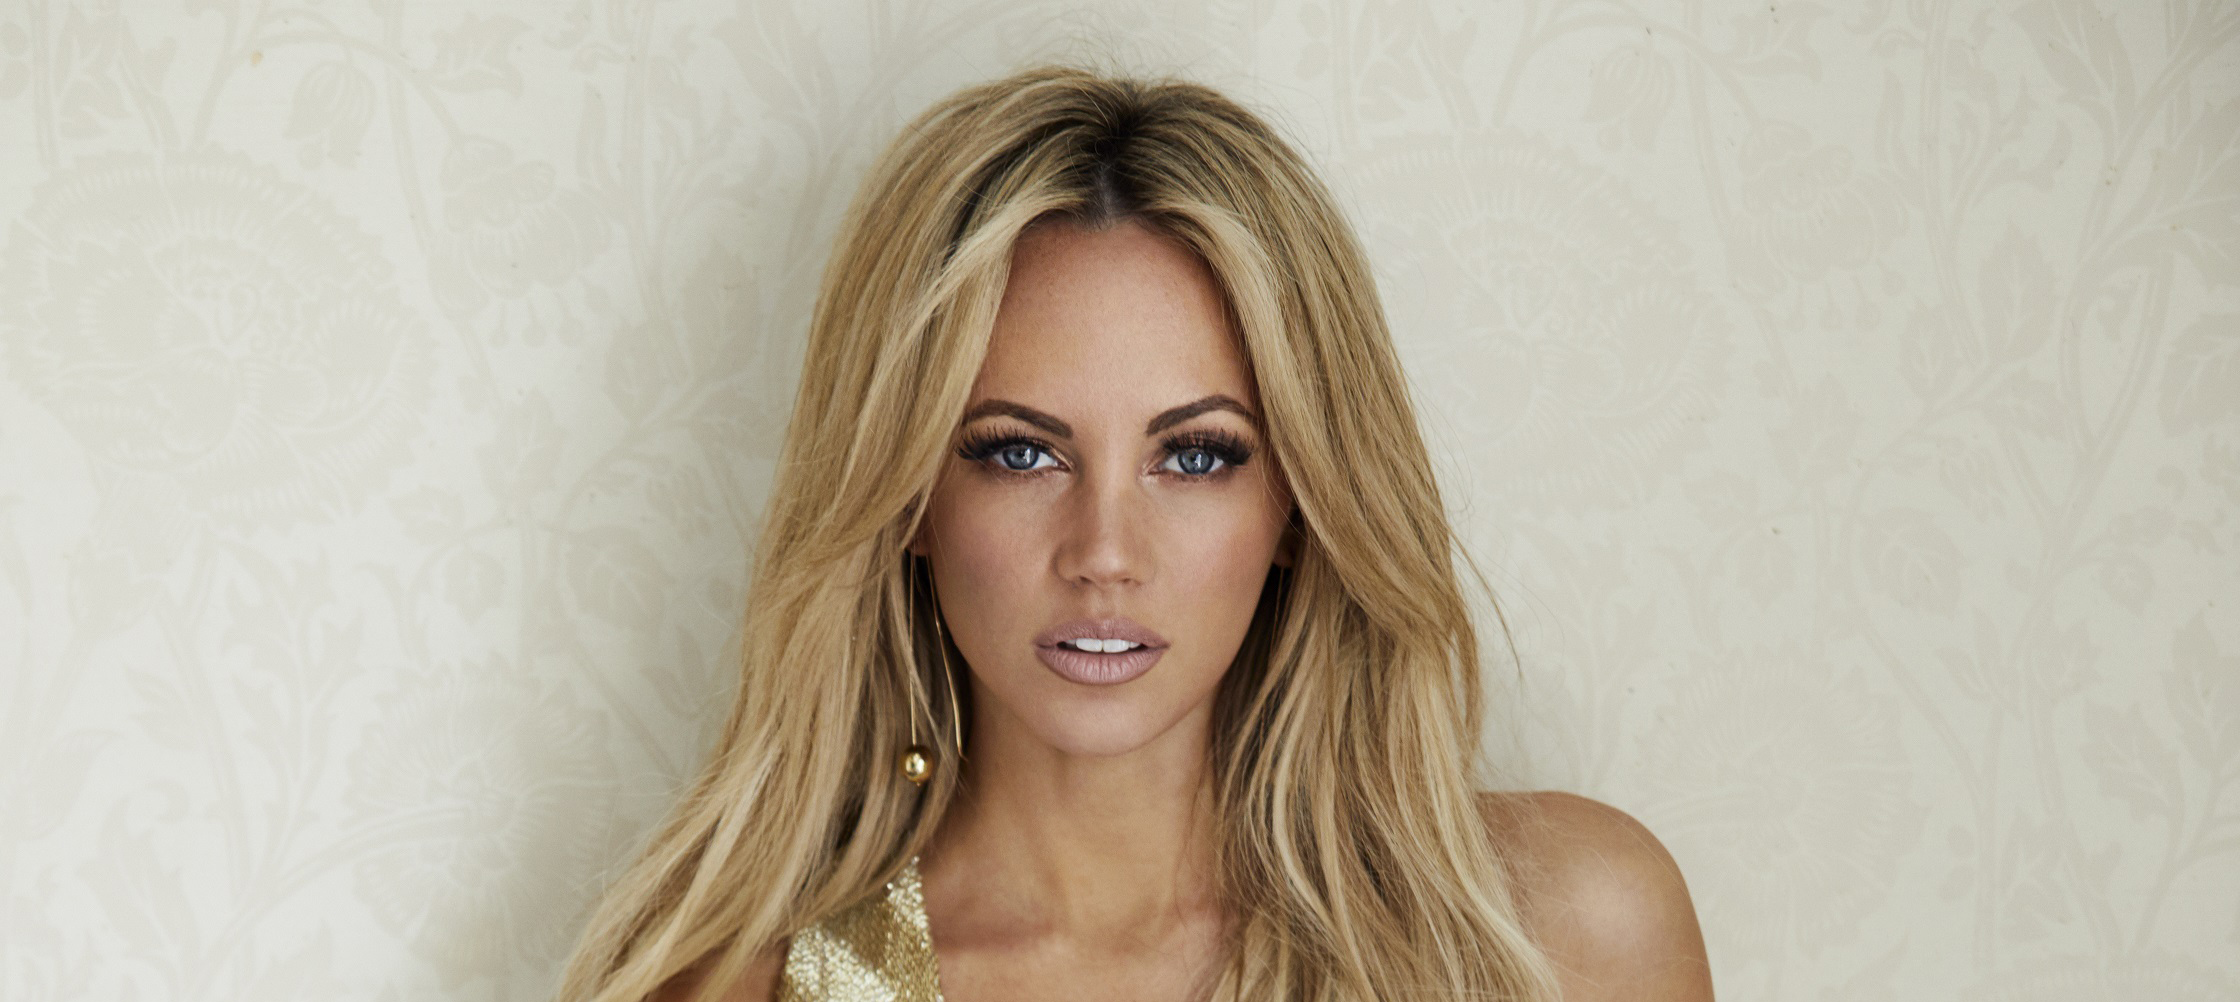 Samantha Jade releases new album 'The Magic Of Christmas'